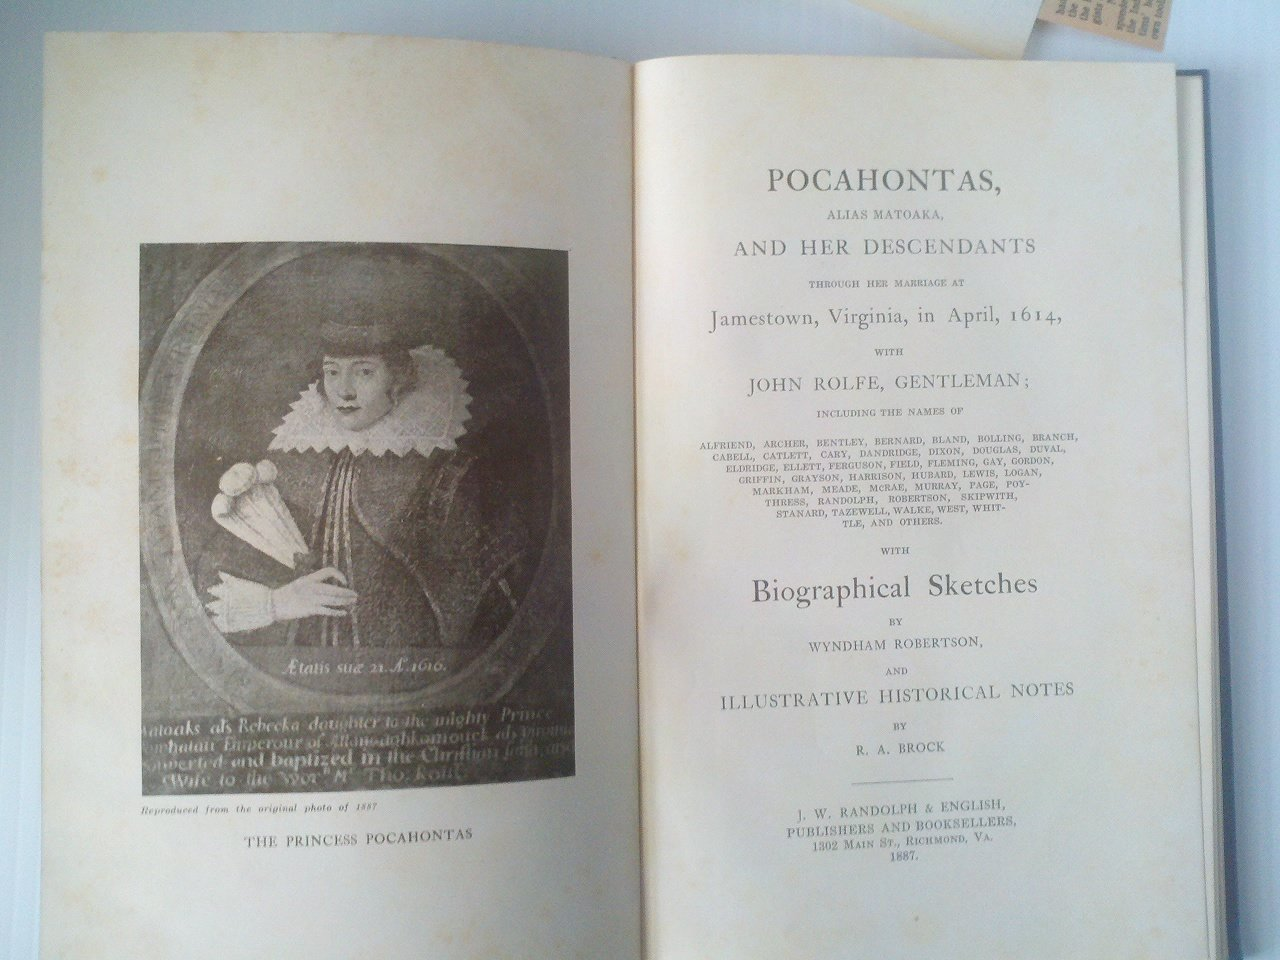 Pocahontas, Alias Matoaka, and Her Descendants Through Her Marriage at  Jamestown, Virginia, in April 1614, with John Rolfe, Gentleman: With  Biographical ...